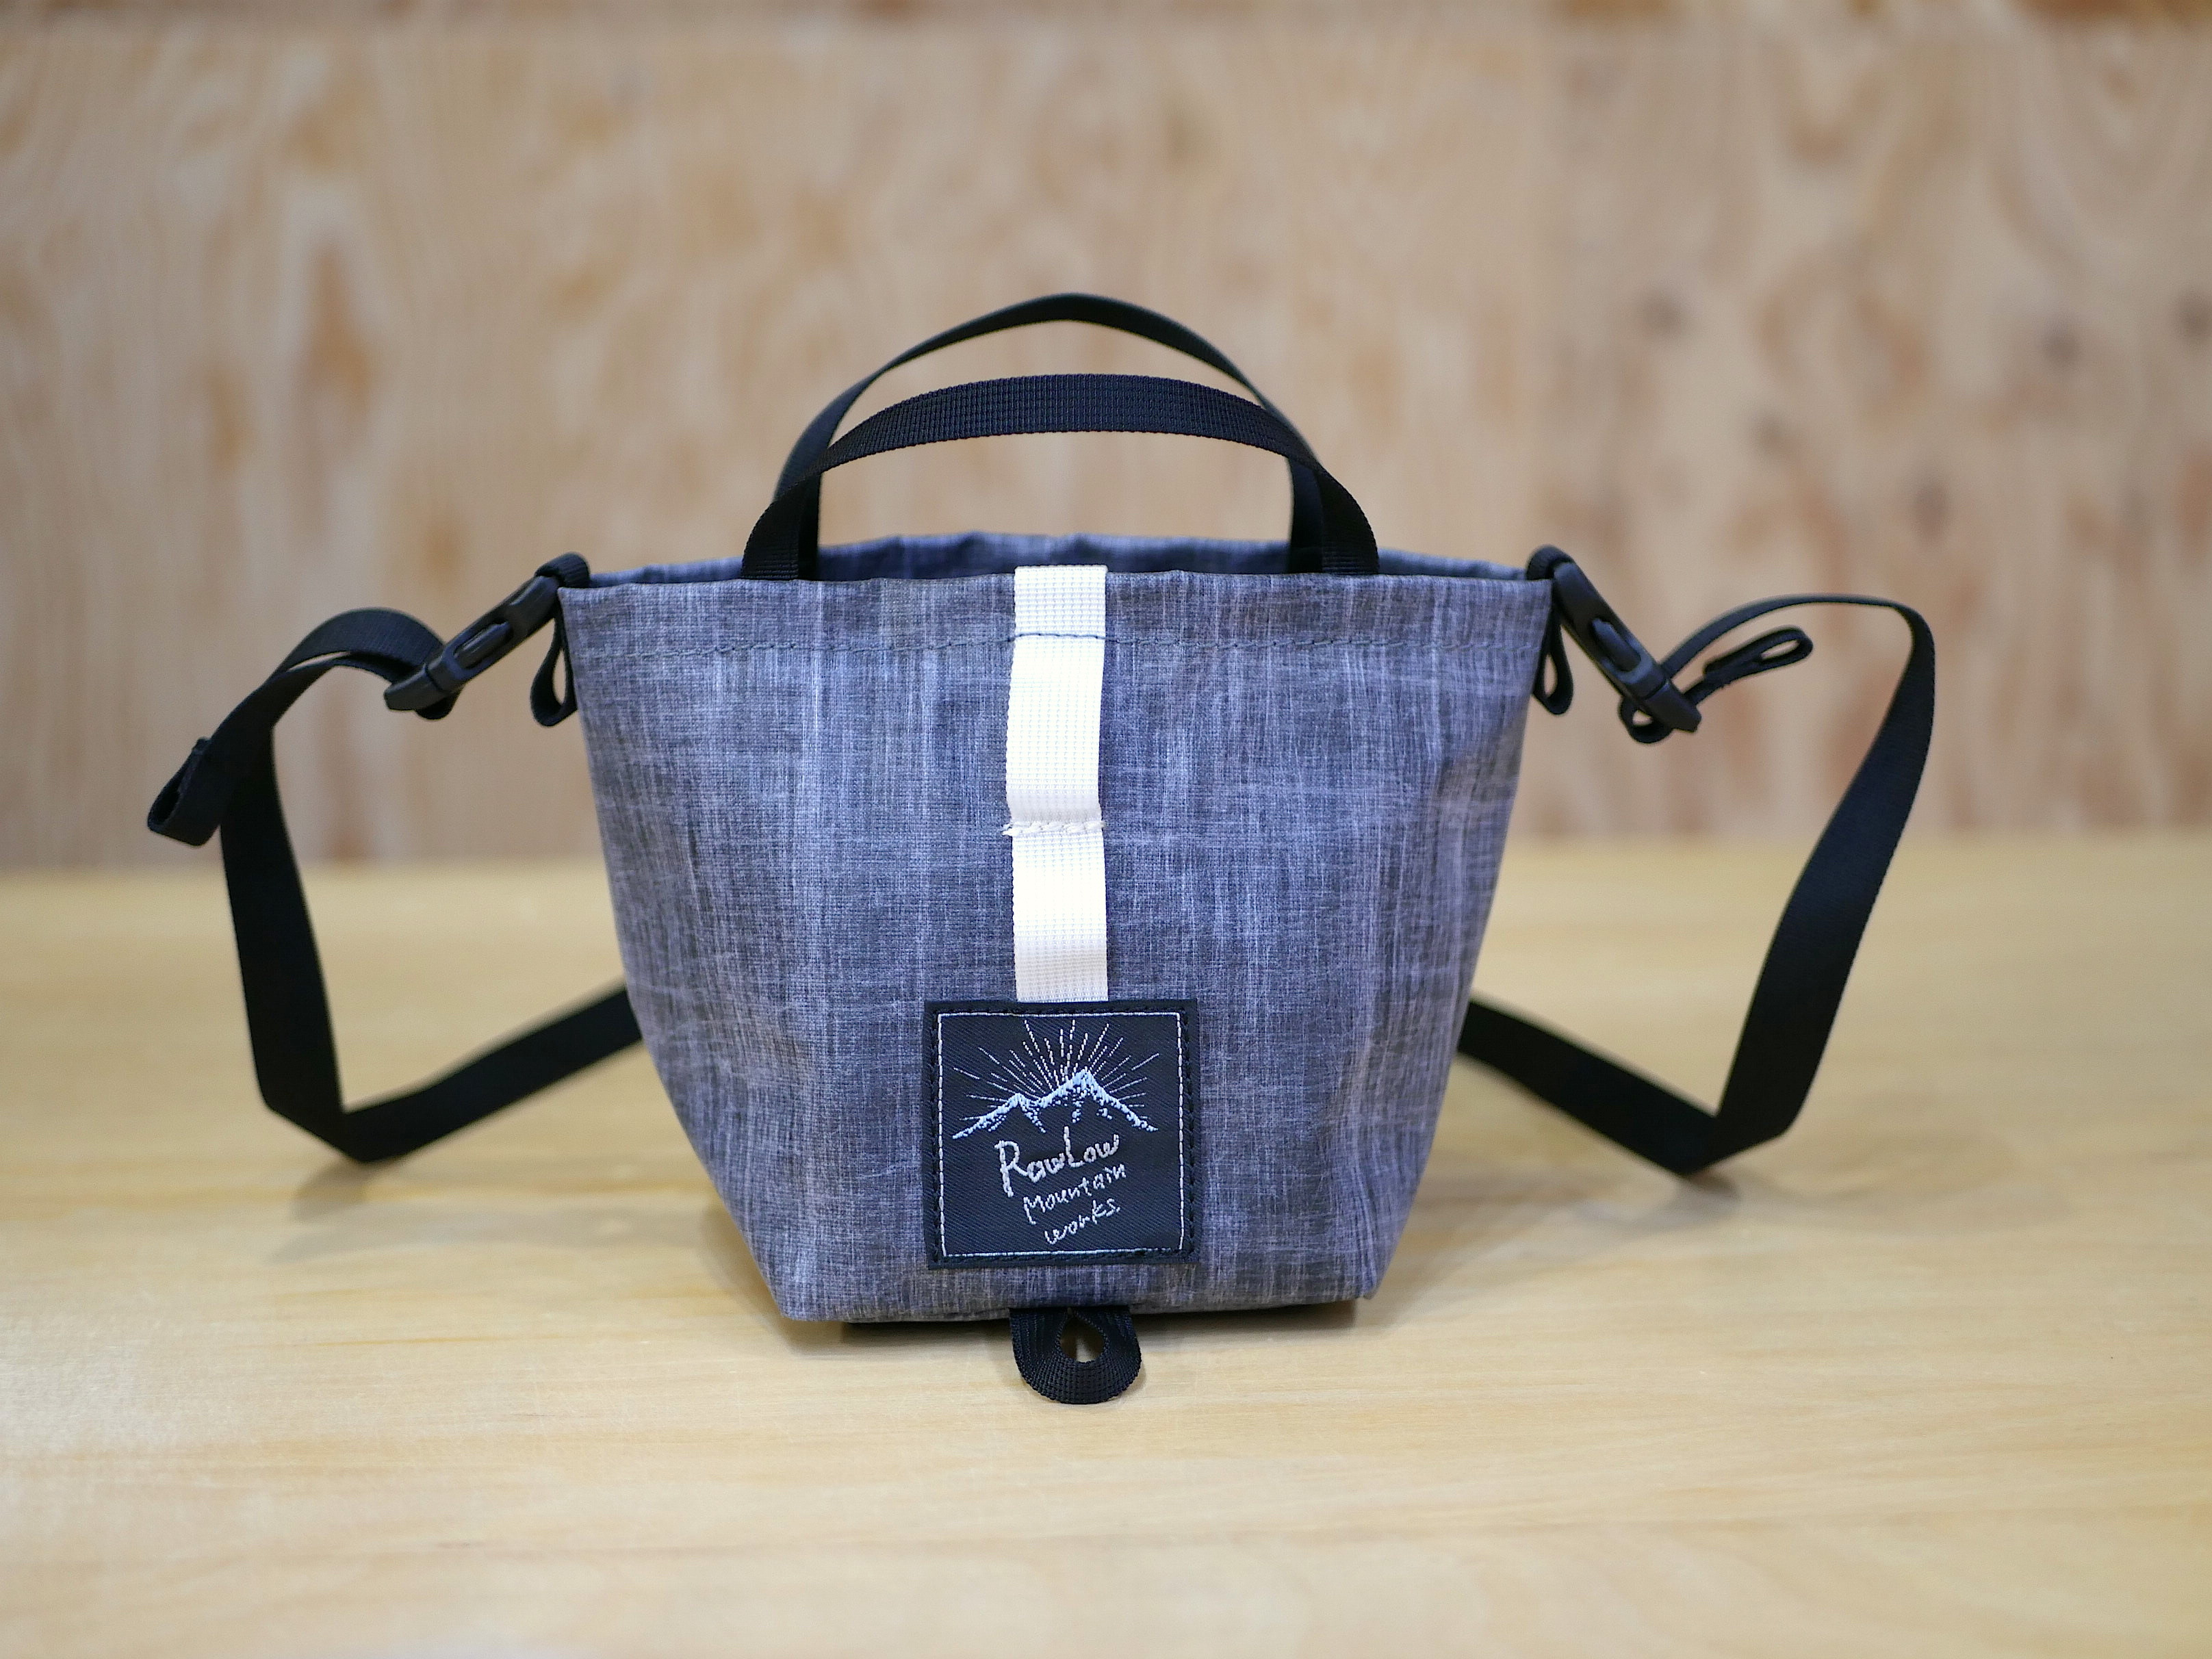 RAWLOW MOUNTAIN WORKS / TIBITIBI TOTE(BLACK HEATHER EDITION)